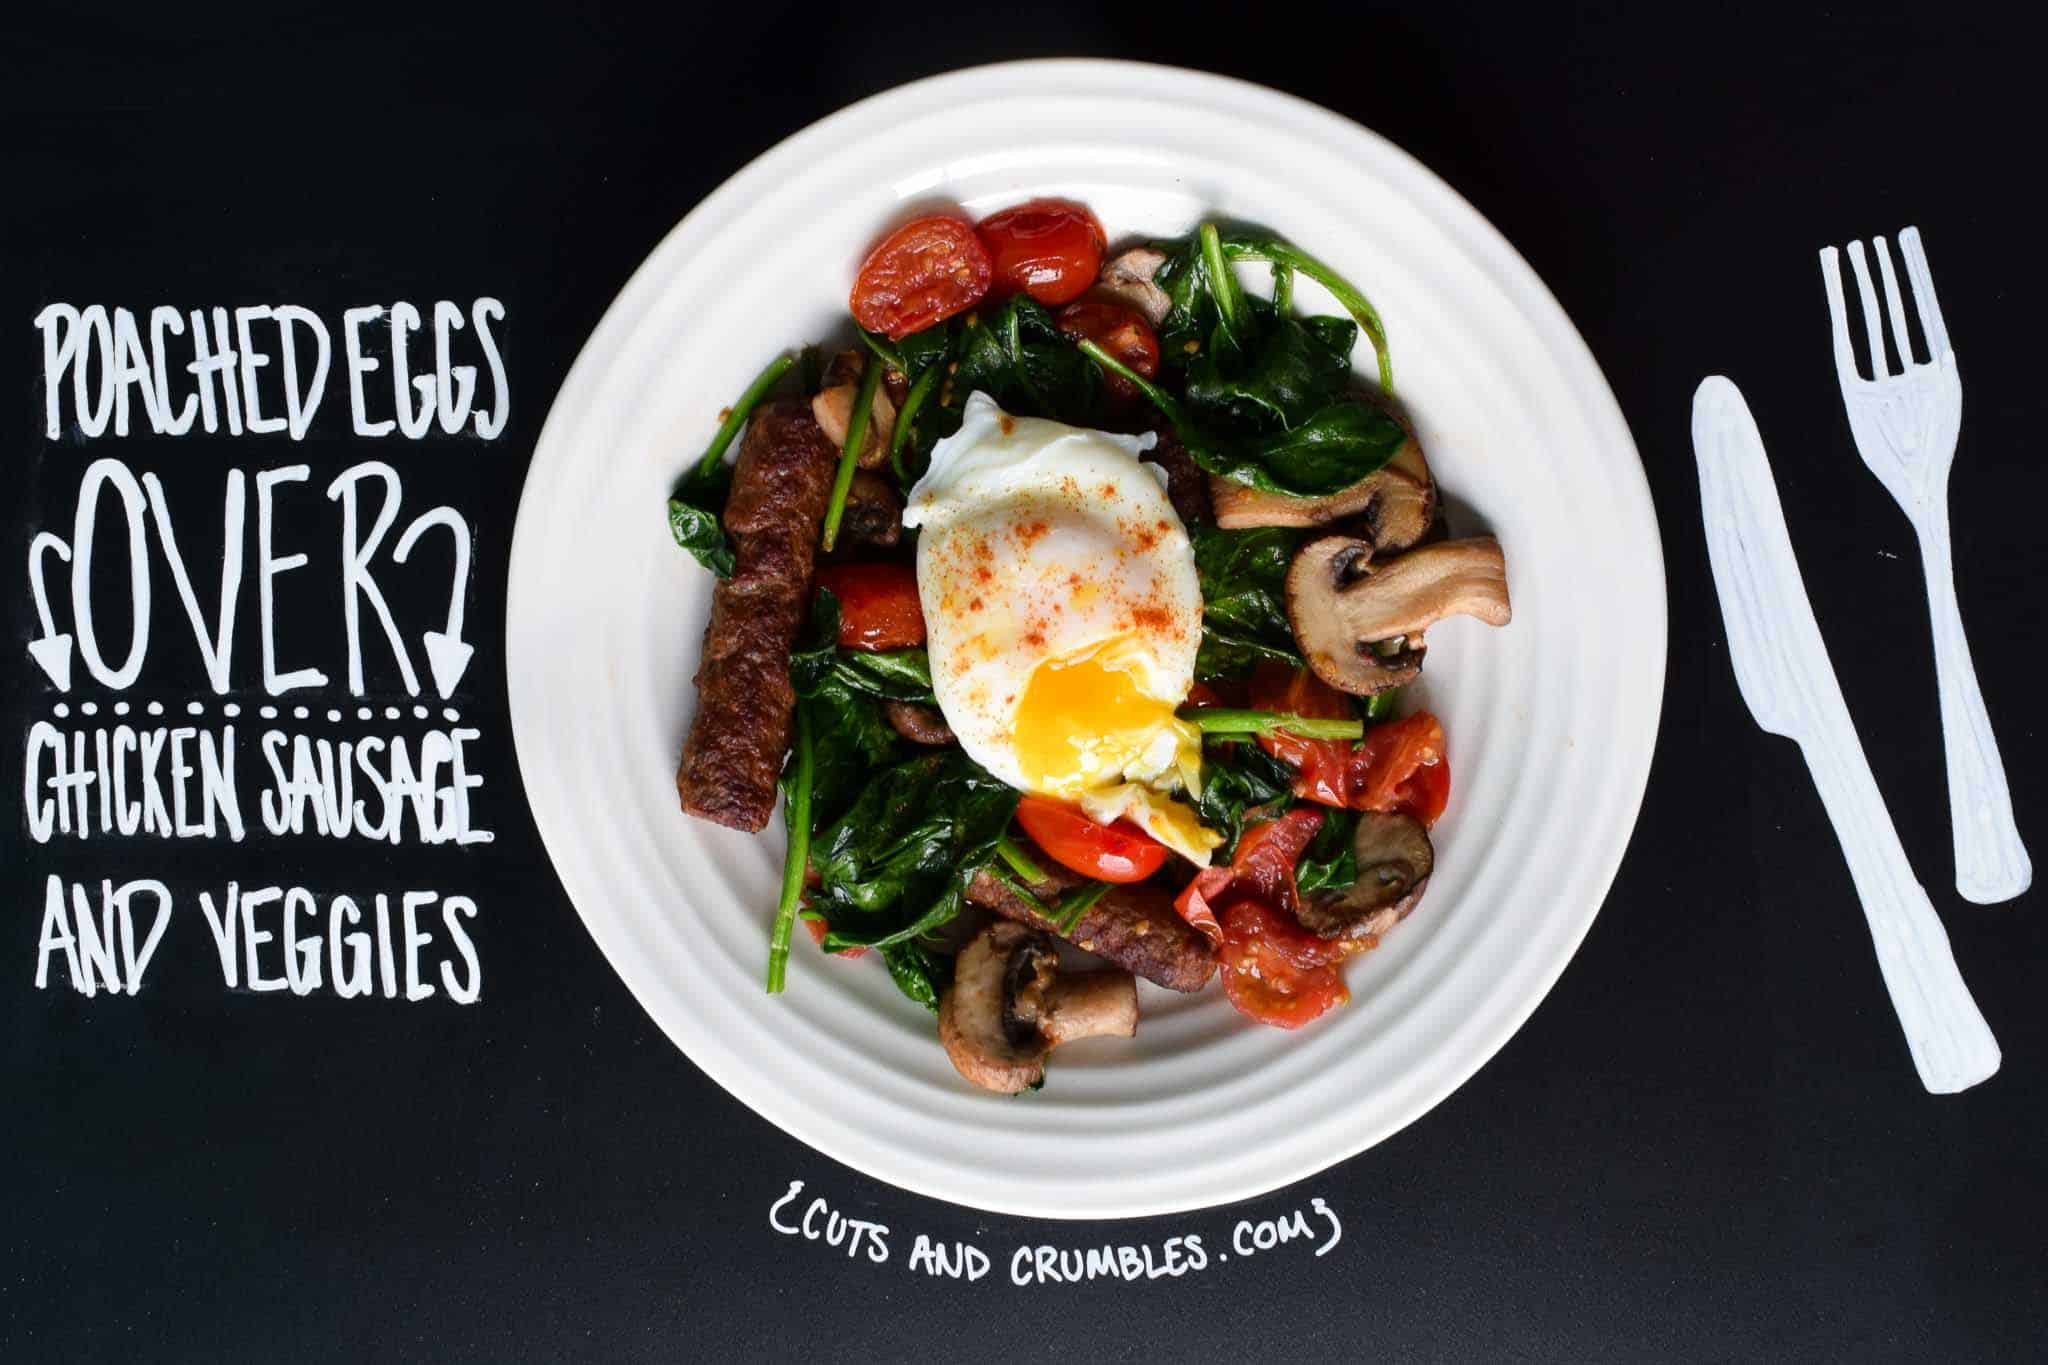 Poached Eggs Over Chicken Sausage and Veggies with title written on chalkboard